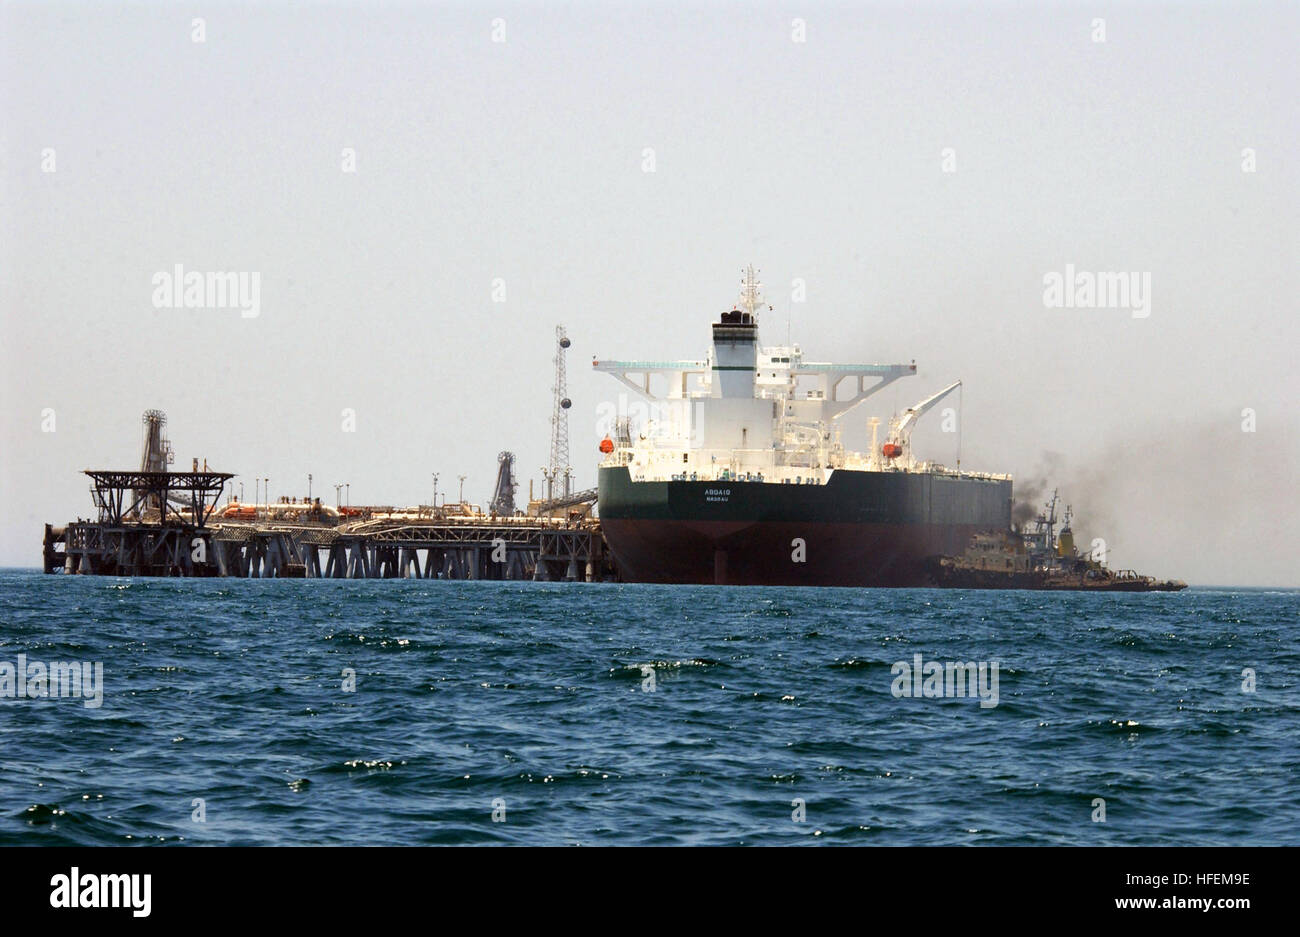 030628-N-6077T-006 Central Command Area of Responsibility (Jun. 28, 2003) -- Commercial oil tanker AbQaiq is helped - Stock Image